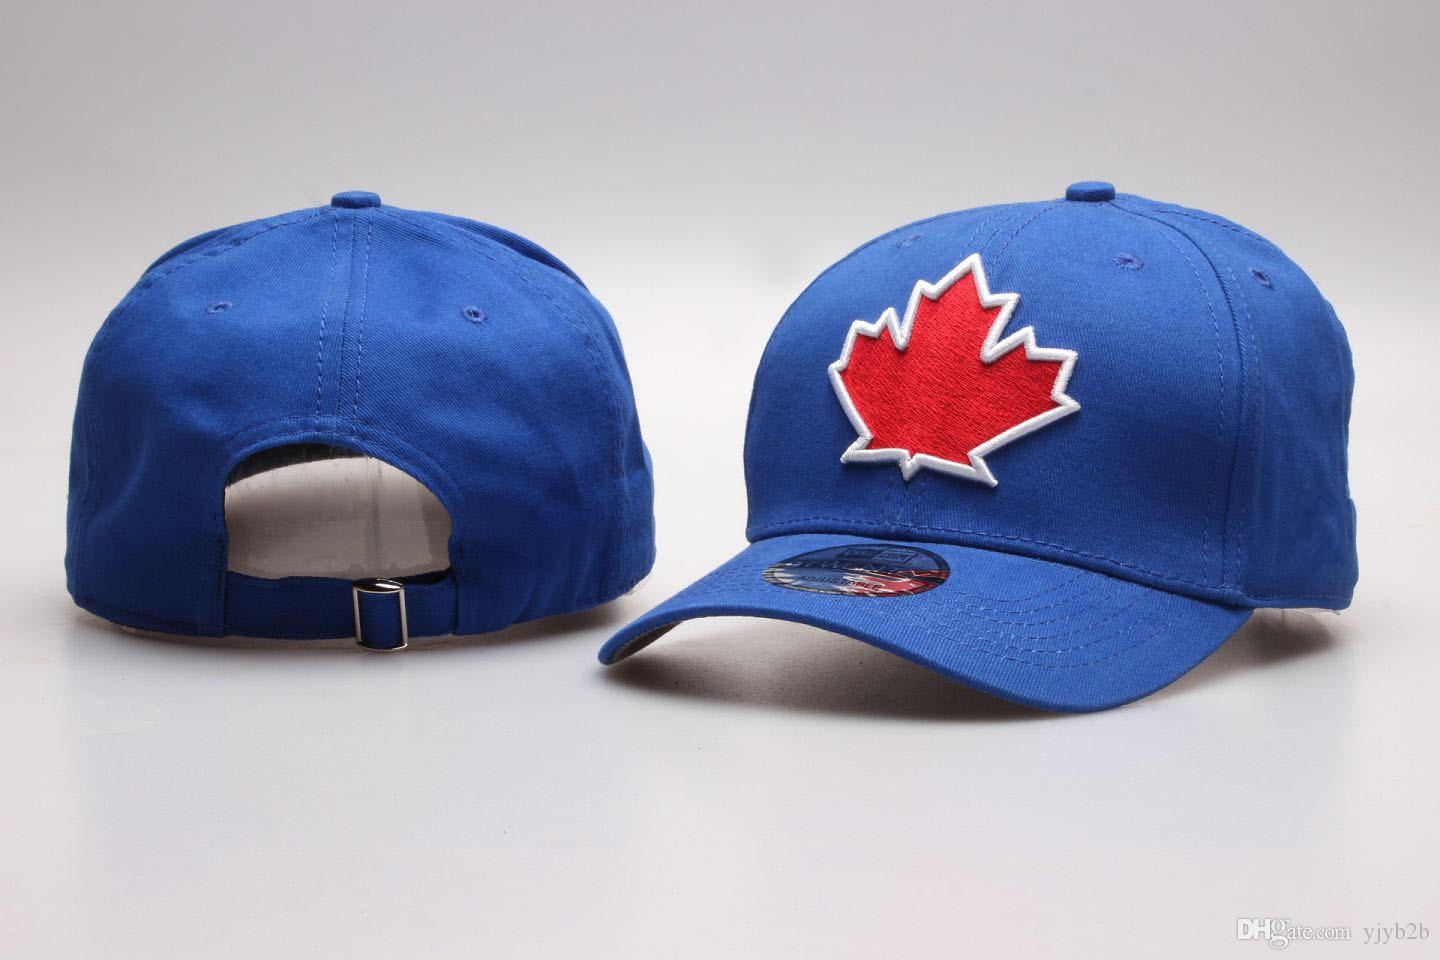 2018 New Arrival Men s Toronto Snapback Hats Royal Blue Golf Brim ... 77376790cba8